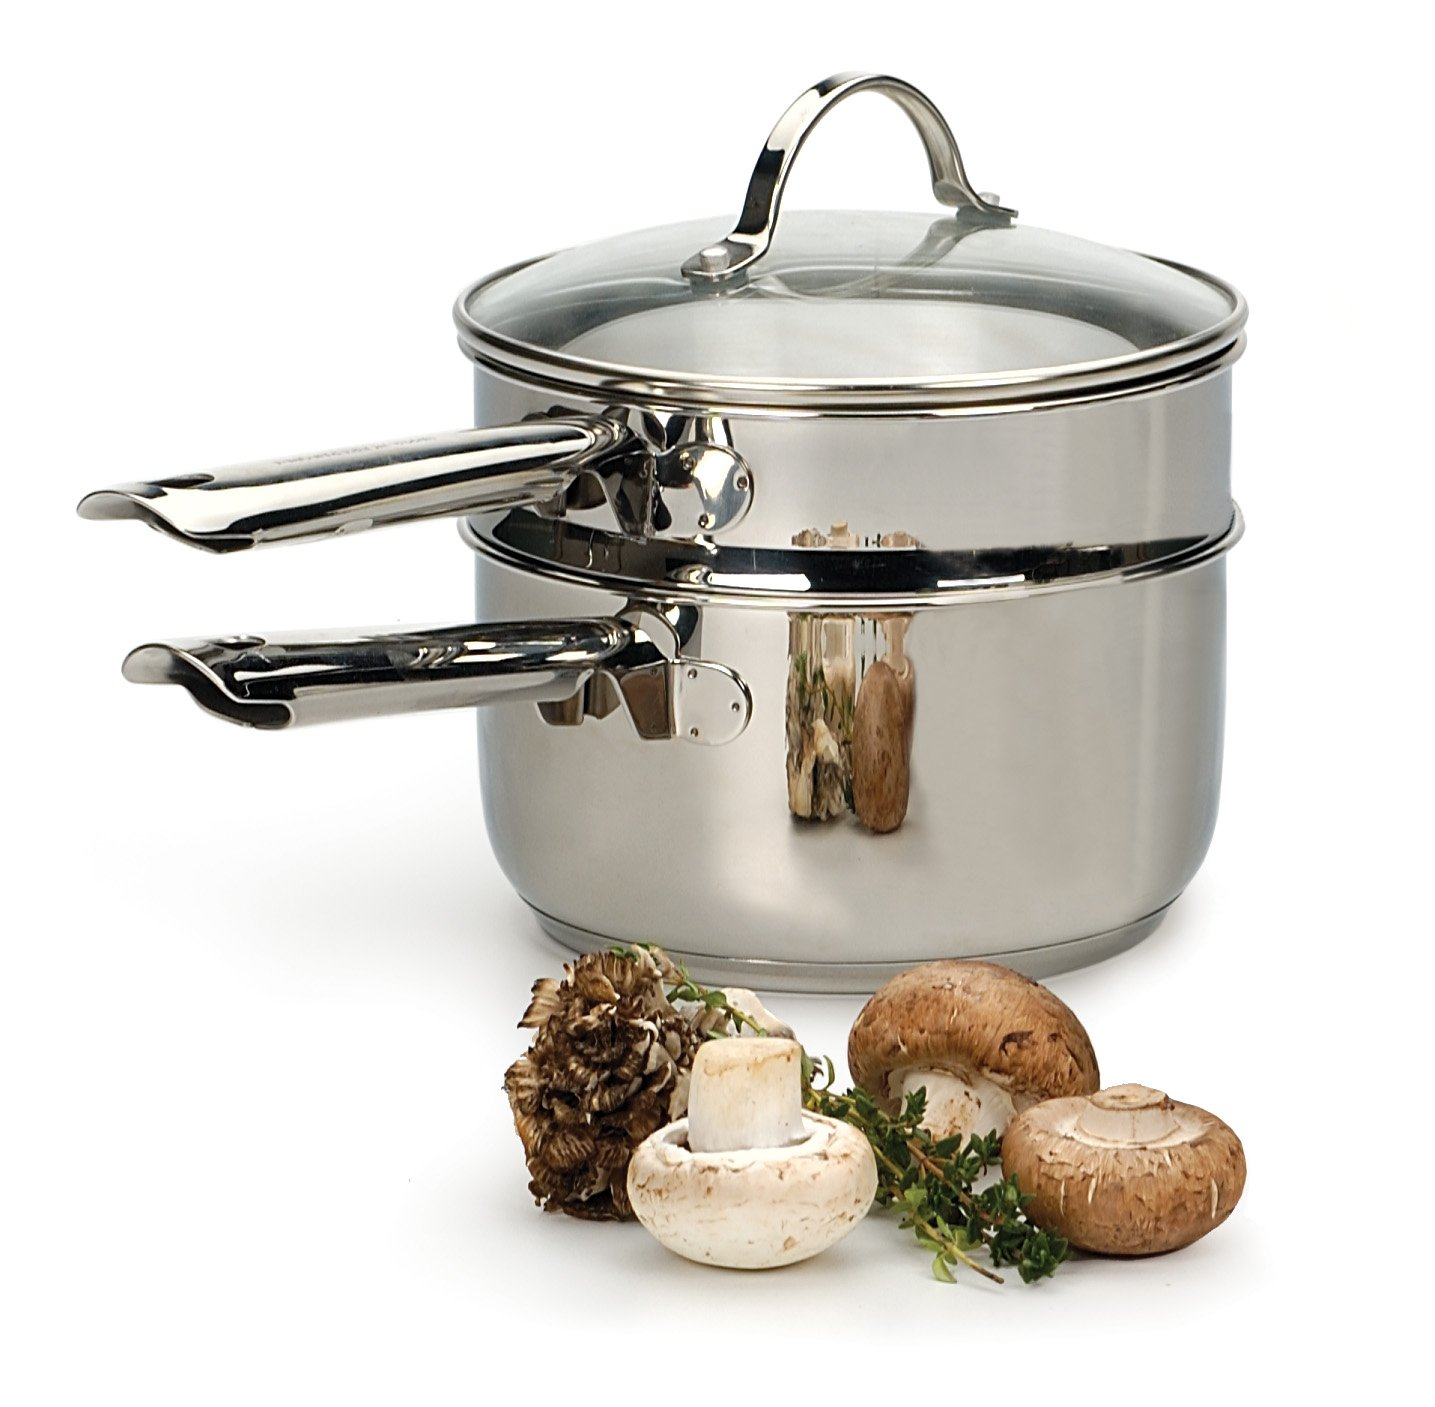 RSVP Endurance 2-Quart Stainless Steel Induction Double Boiler by RSVP International (Image #3)